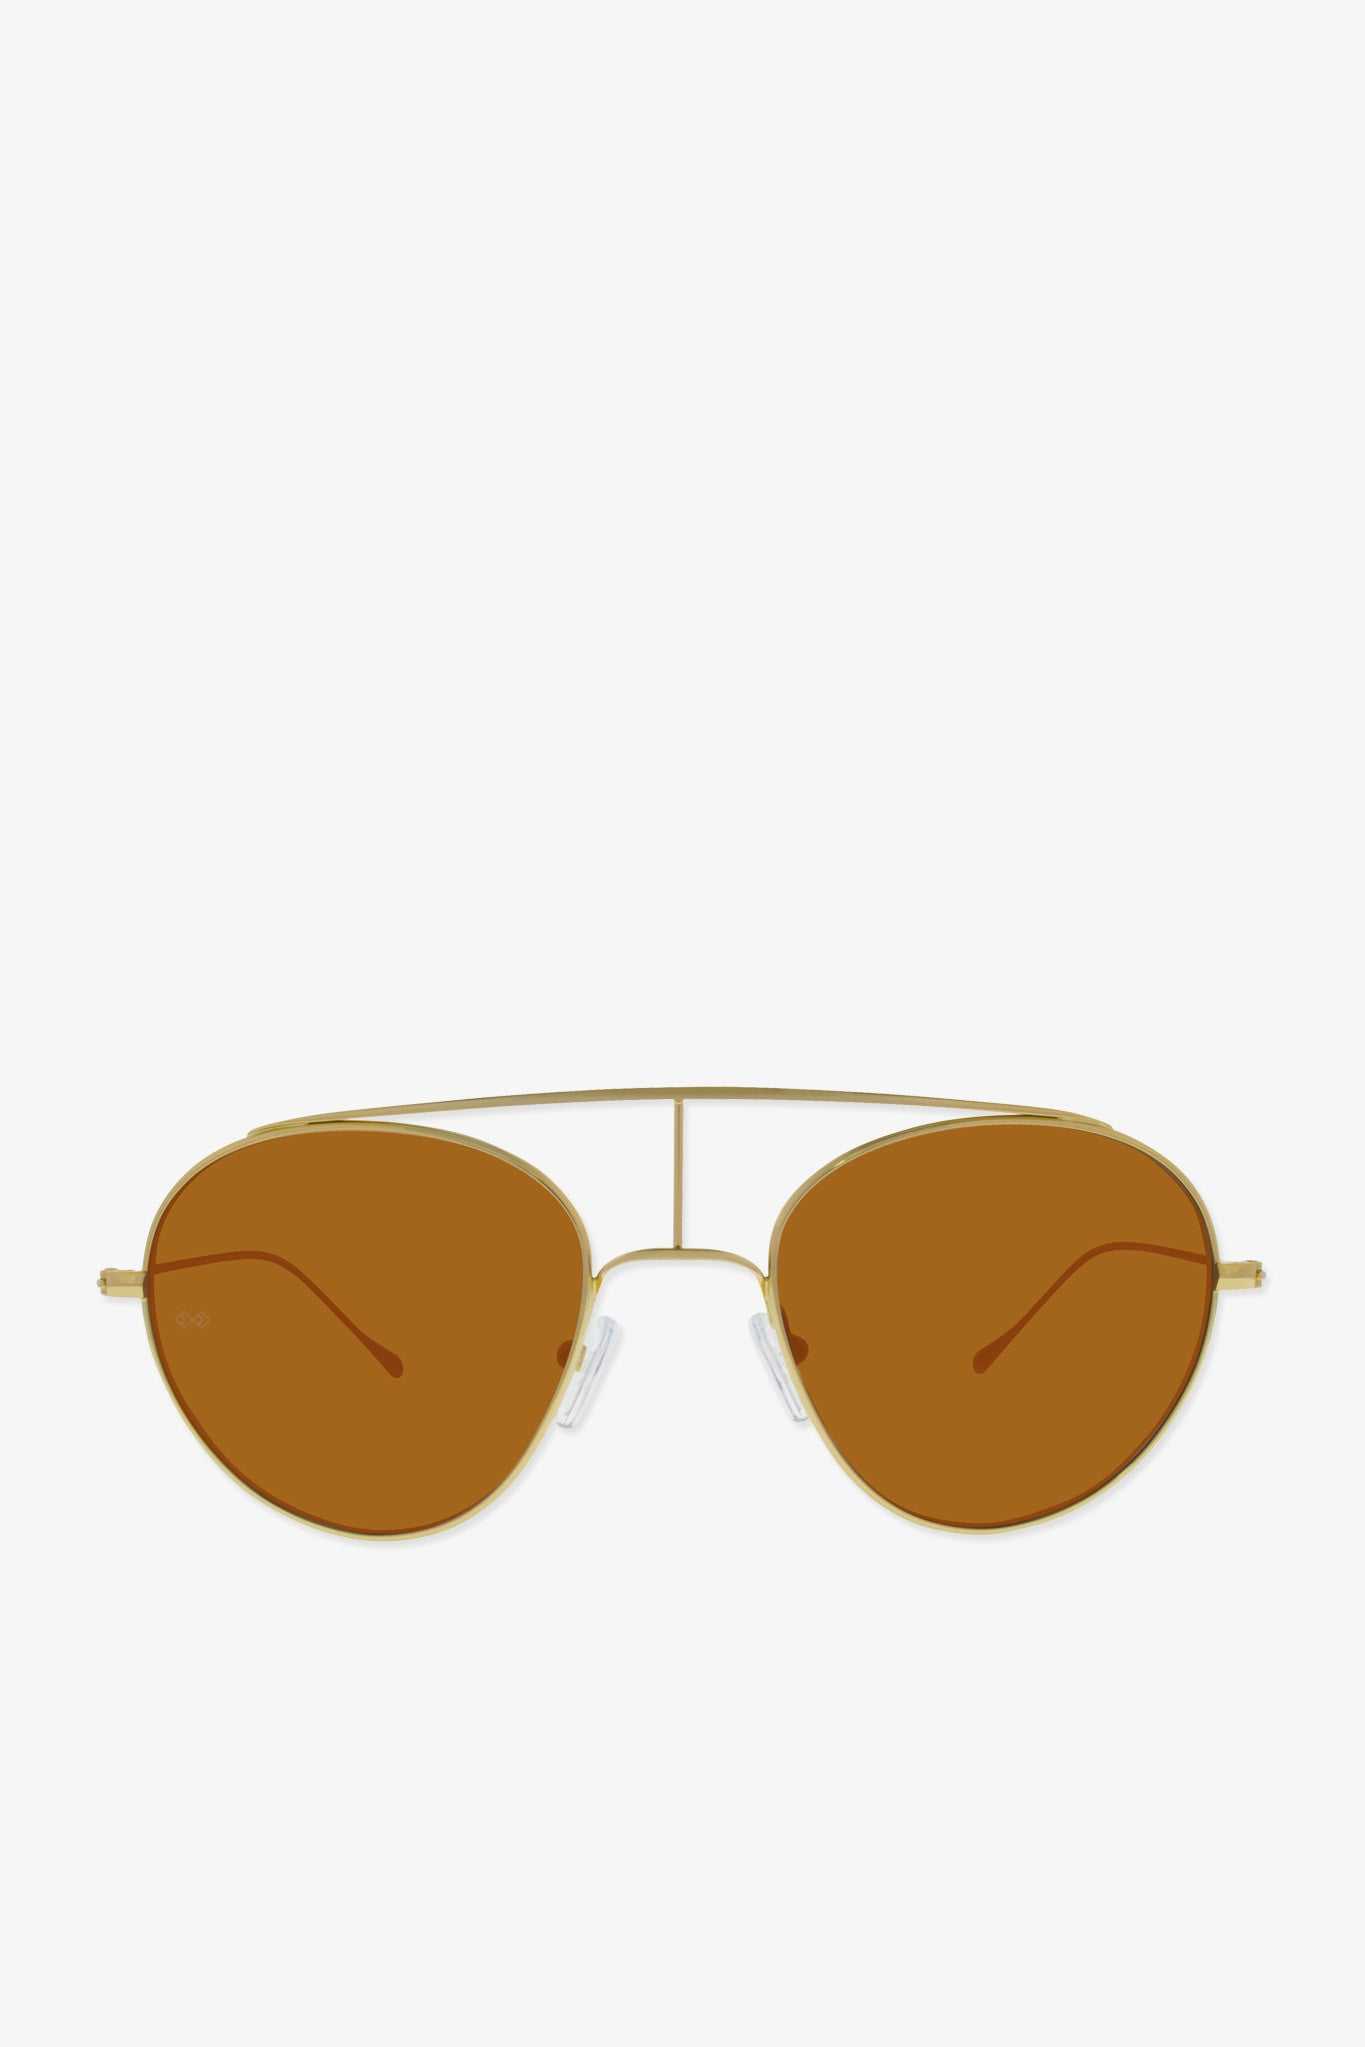 Geo 6 sunglasses in gold